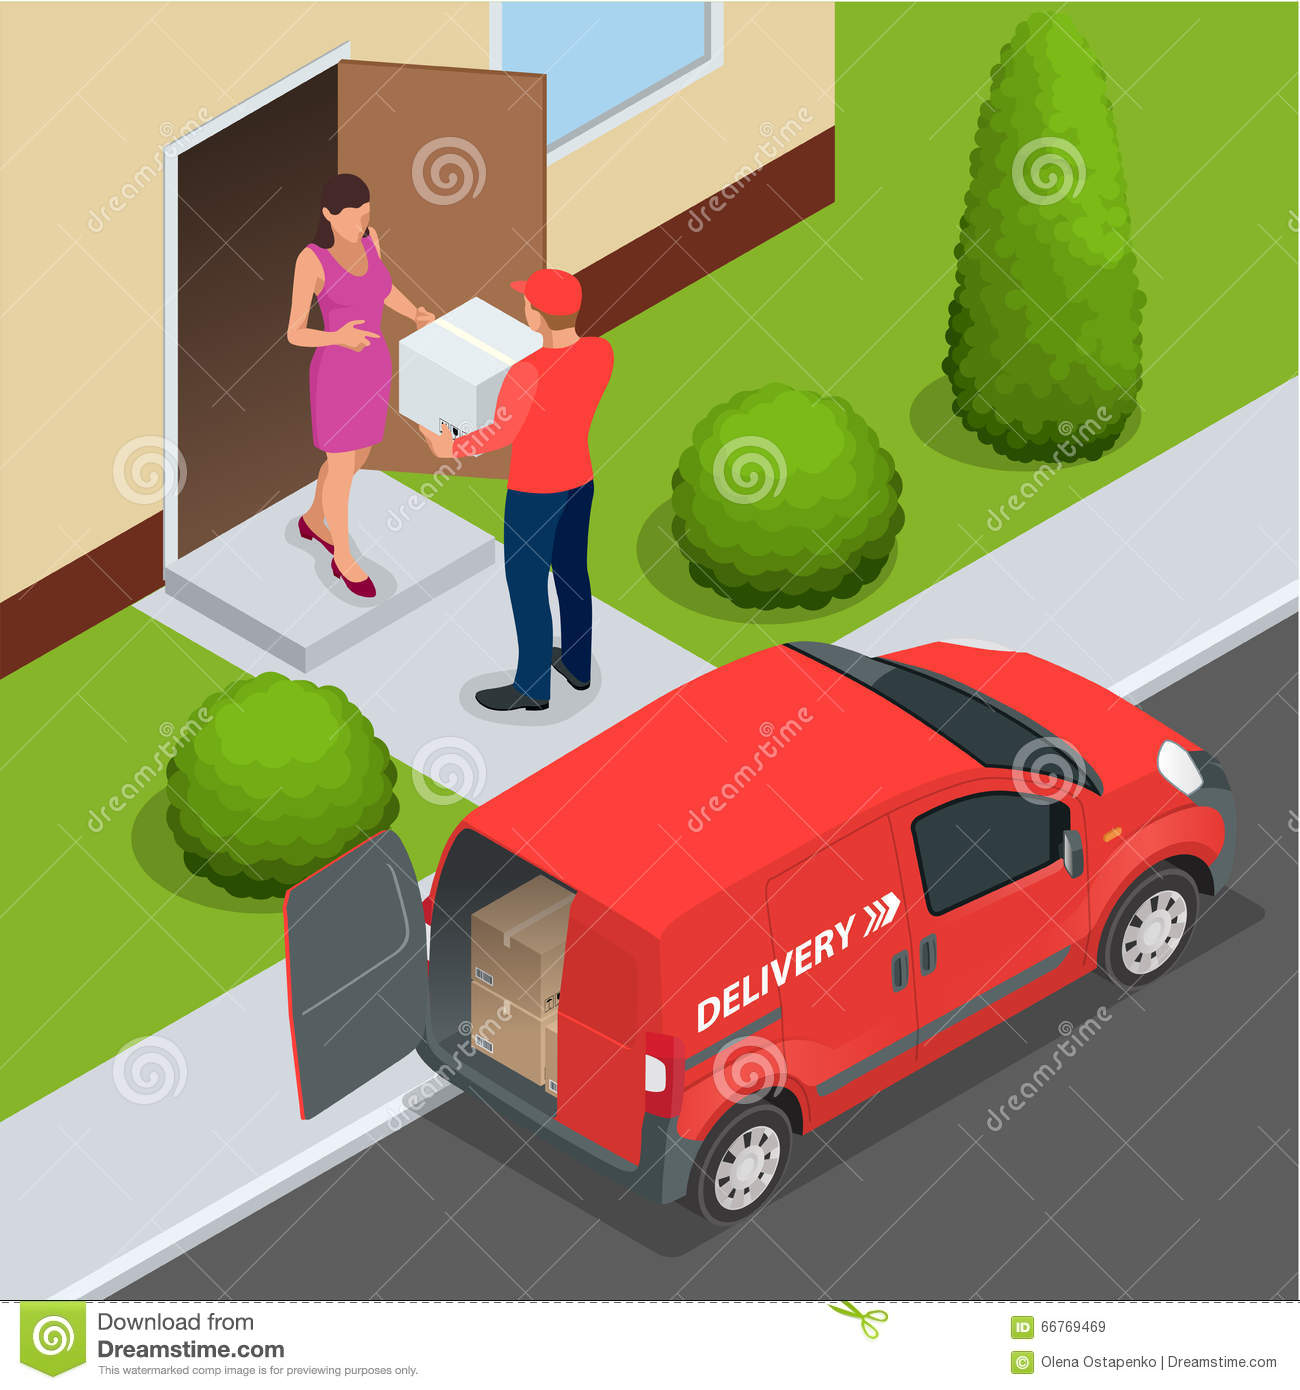 Shipping Delivery: Free Delivery, Fast Delivery, Home Delivery, Free Shipping